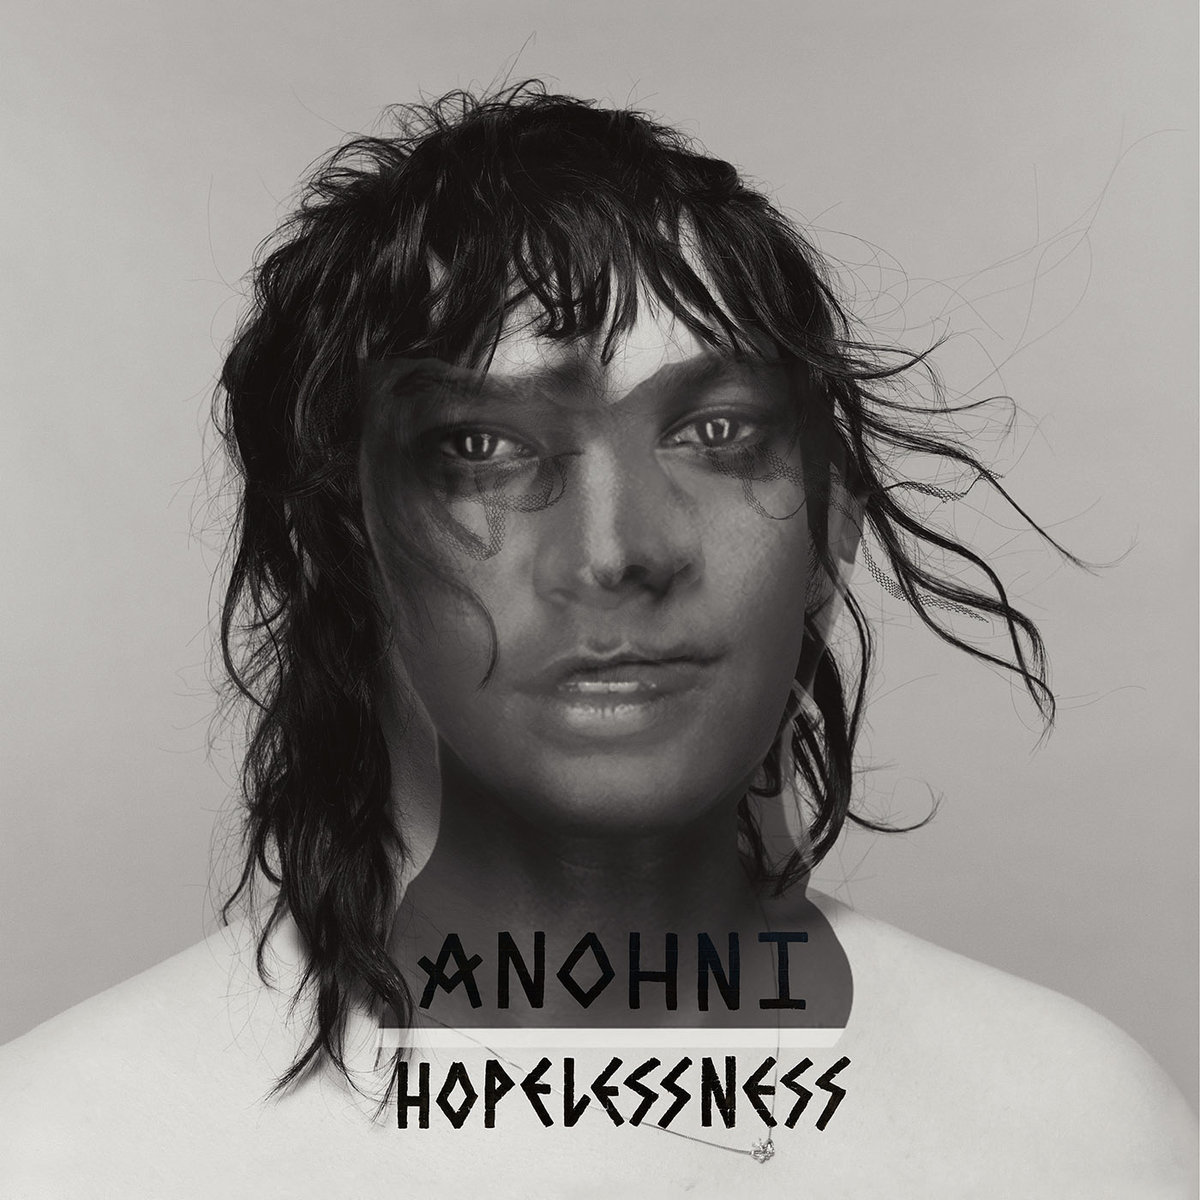 Anohni's Hopelessness is a Gratuitous, Tin-eared Trainwreck